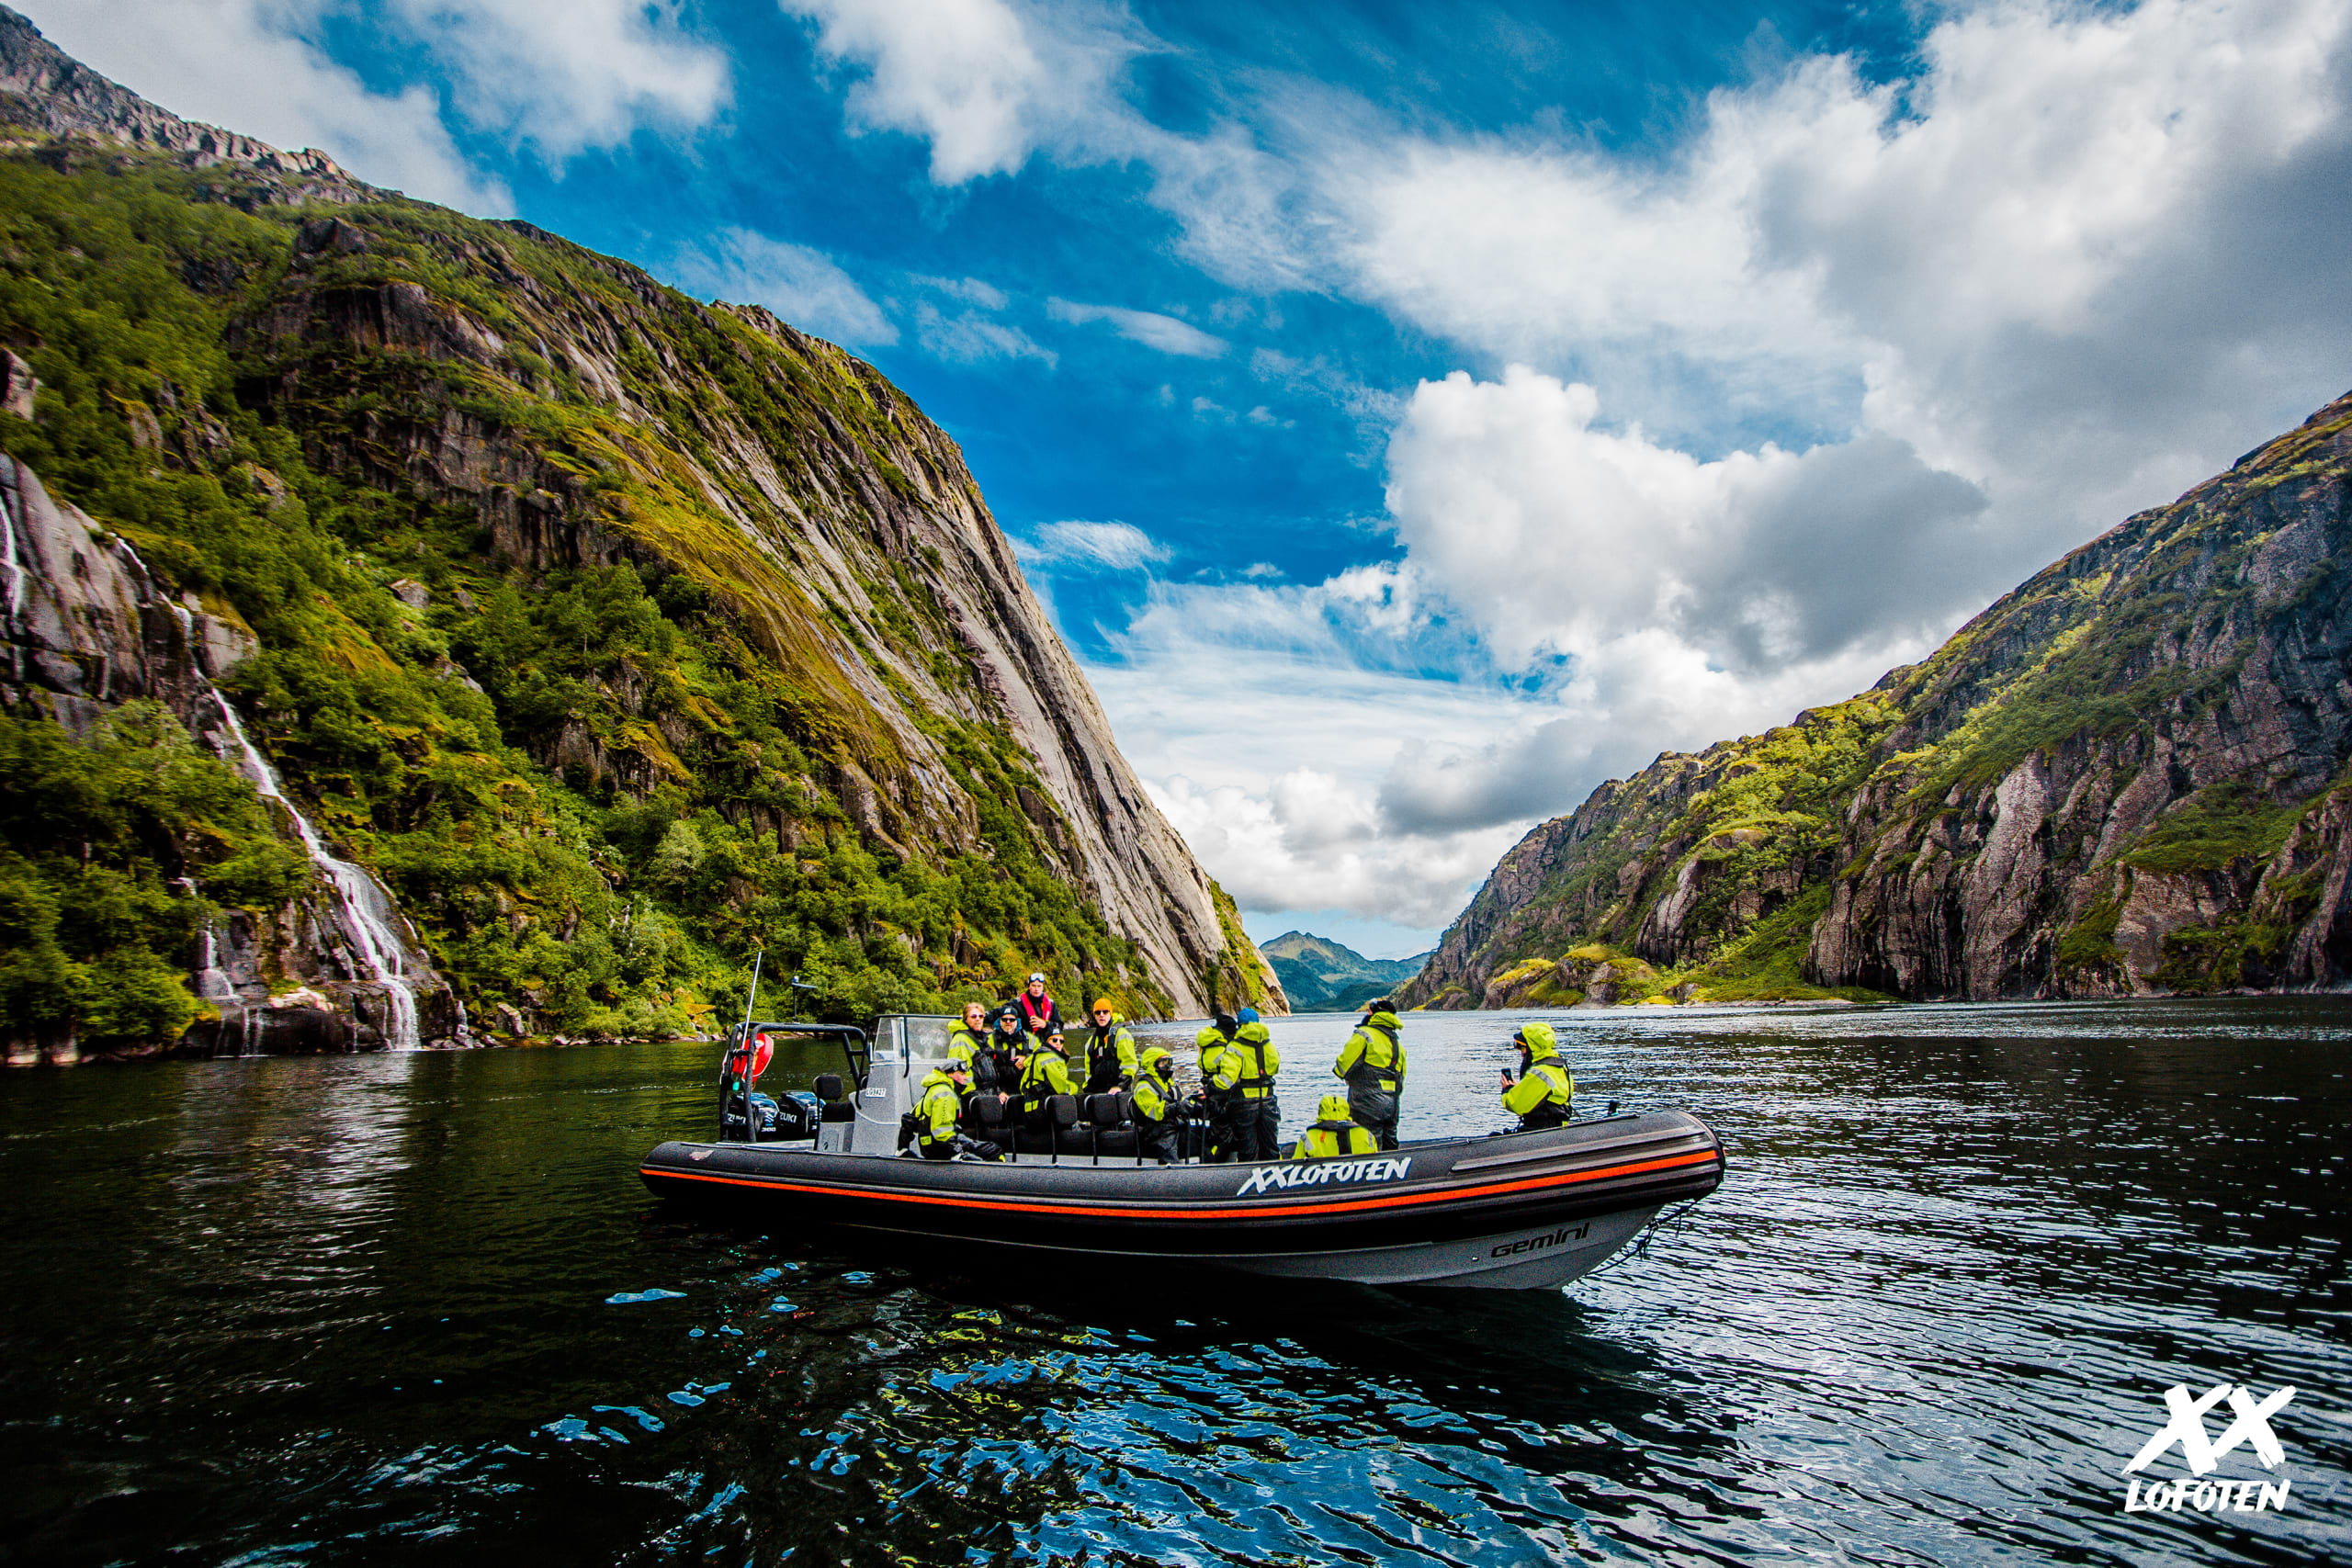 Rib Safari in Trollfjorden with XXLofoten